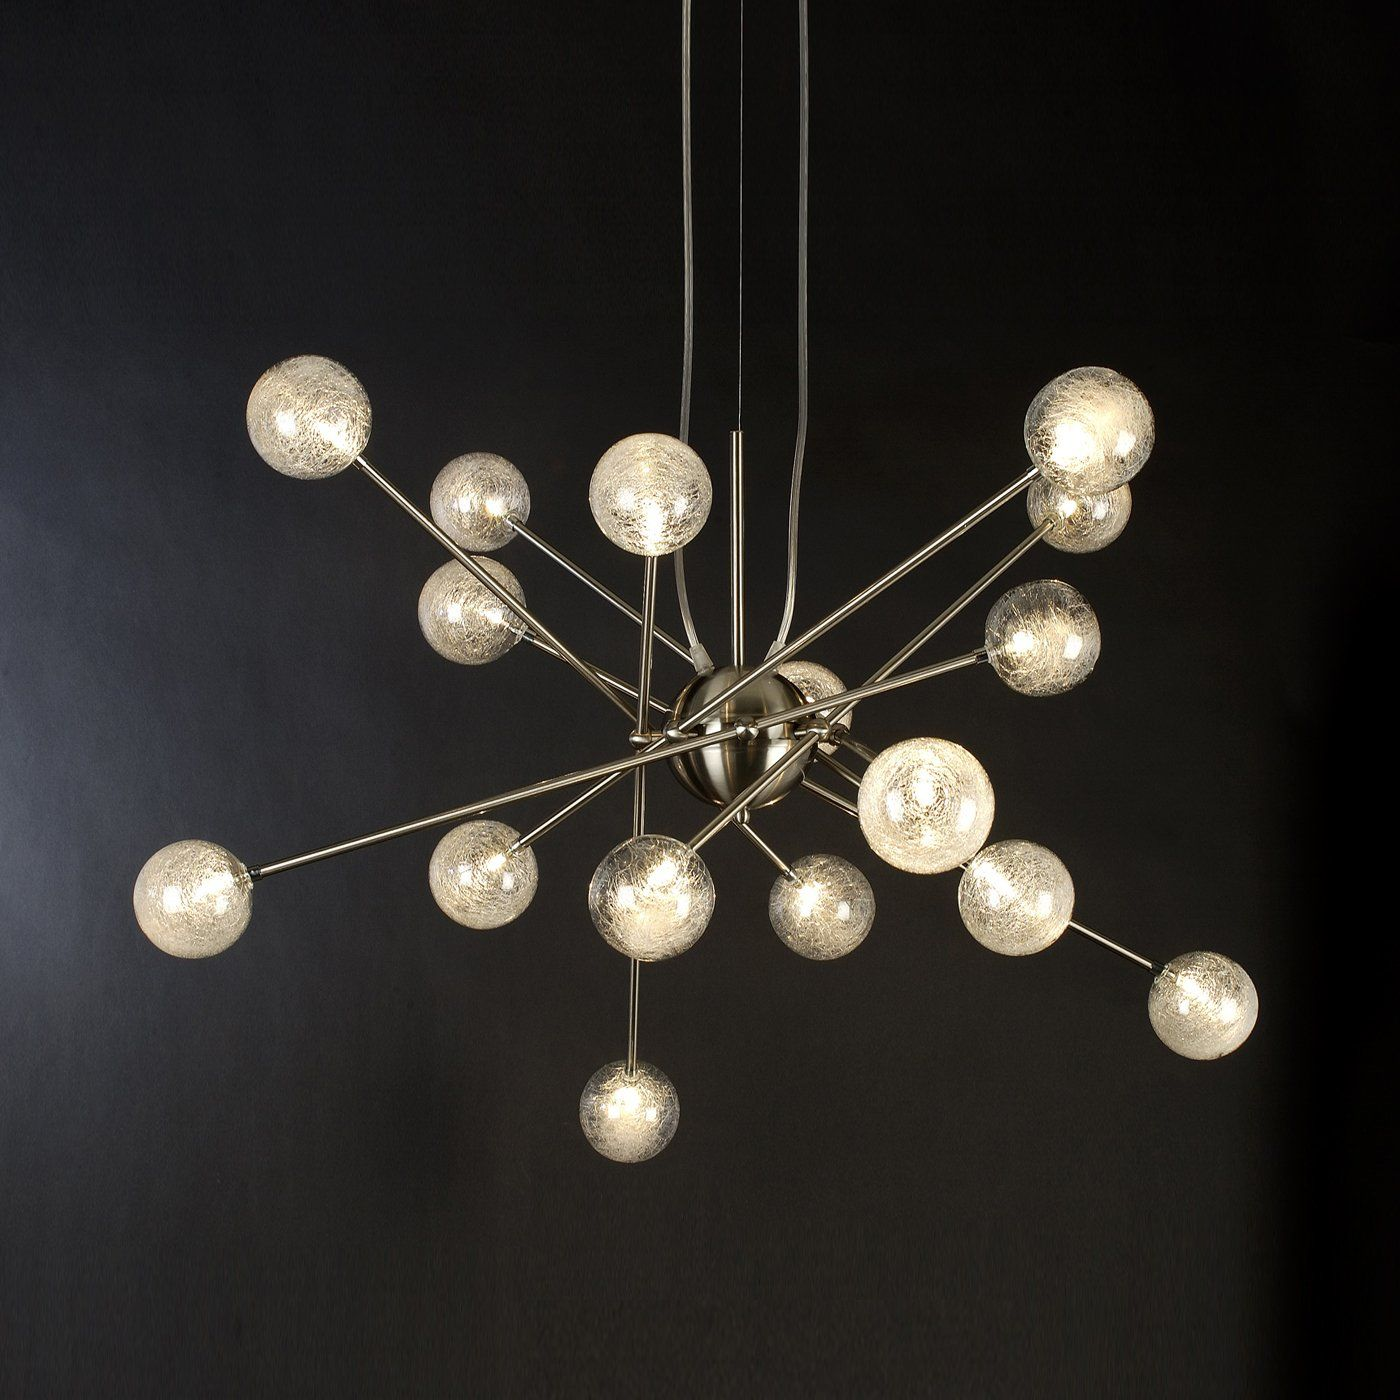 Trend lighting tp6366 16 16 light galaxia chandelier brushed nickel trend lighting tp6366 16 16 light galaxia chandelier brushed nickel lighting universe aloadofball Image collections